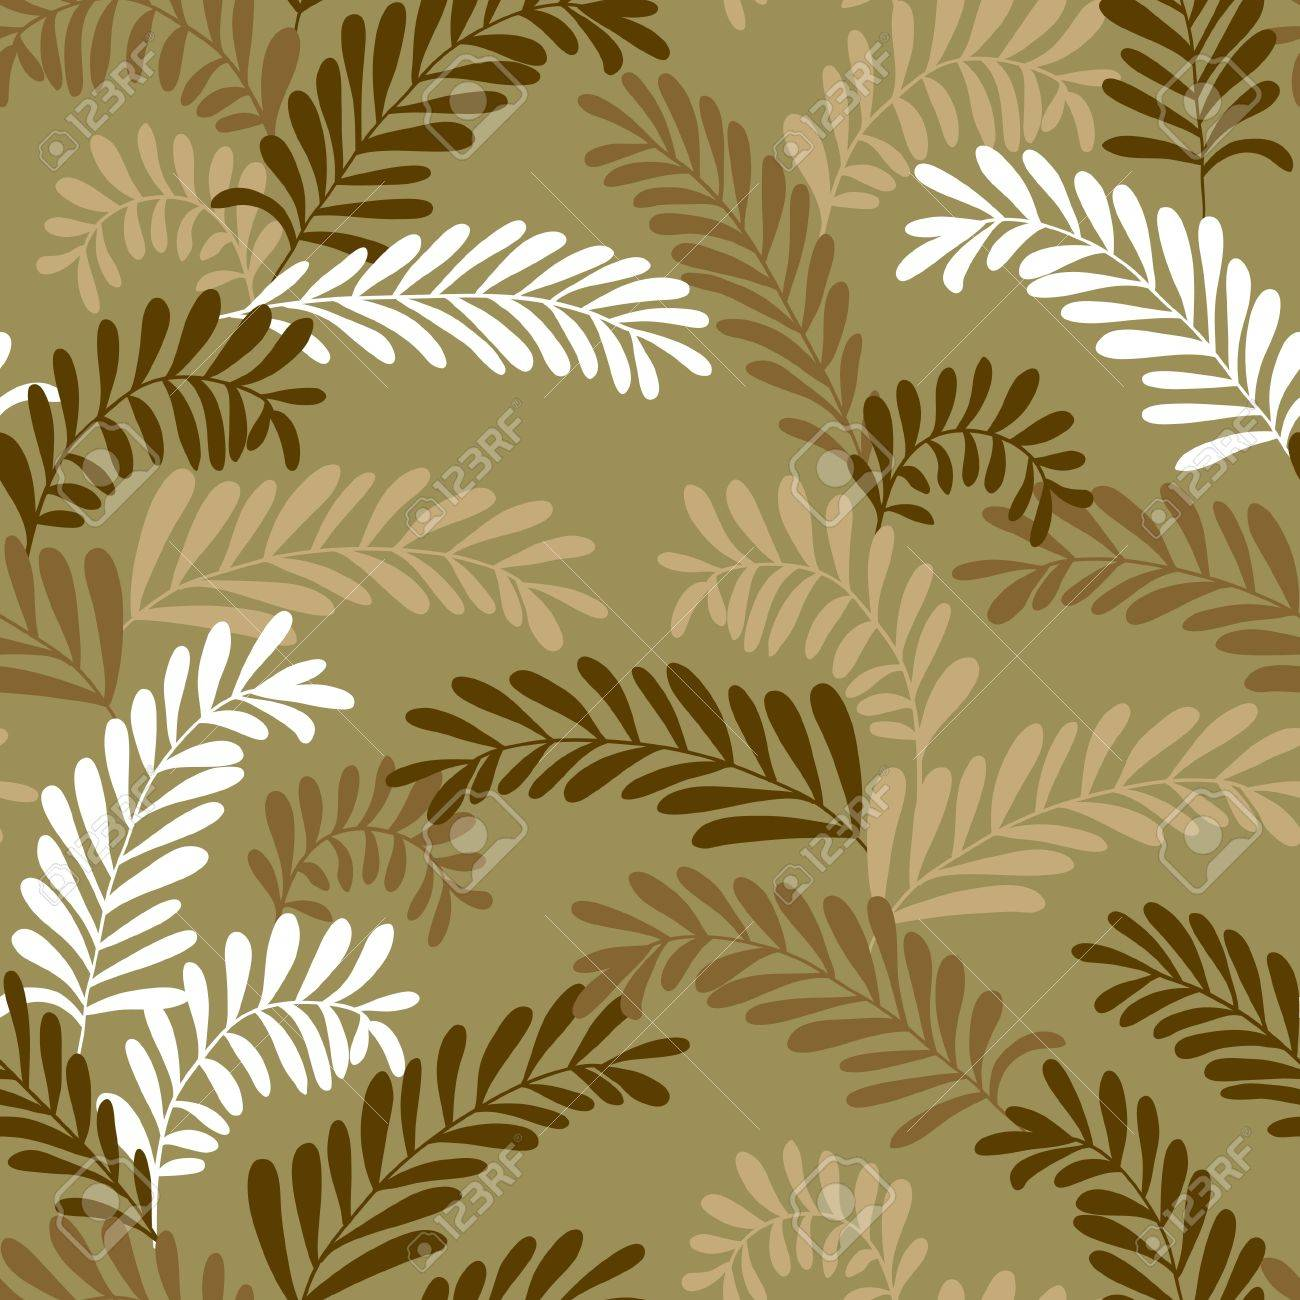 Seamless leaf pattern in brown colors Stock Vector - 17723856